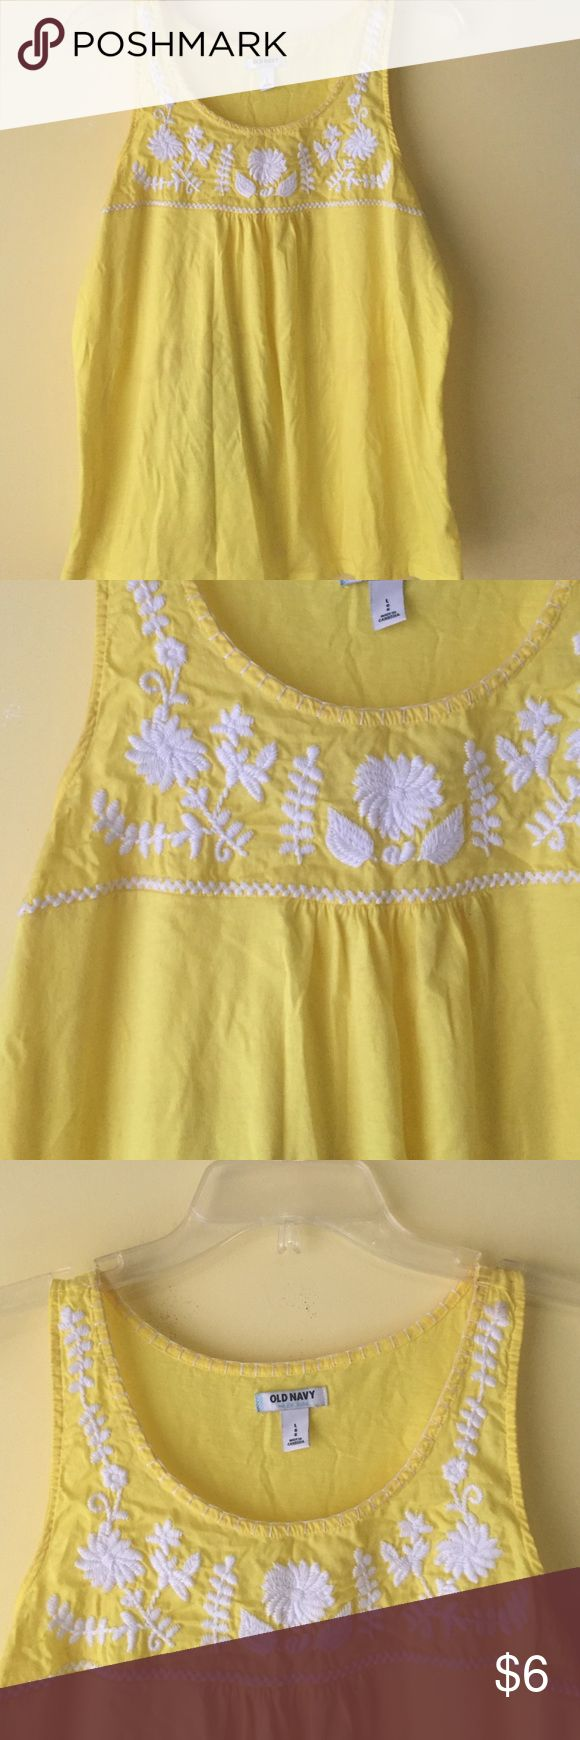 🌼Embroidered yellow tank | size L | Old Navy Worn once. Great condition. Soft yellow with white embroidery. ✖️No damage, stains, etc.✖️ Old Navy Tops Tank Tops